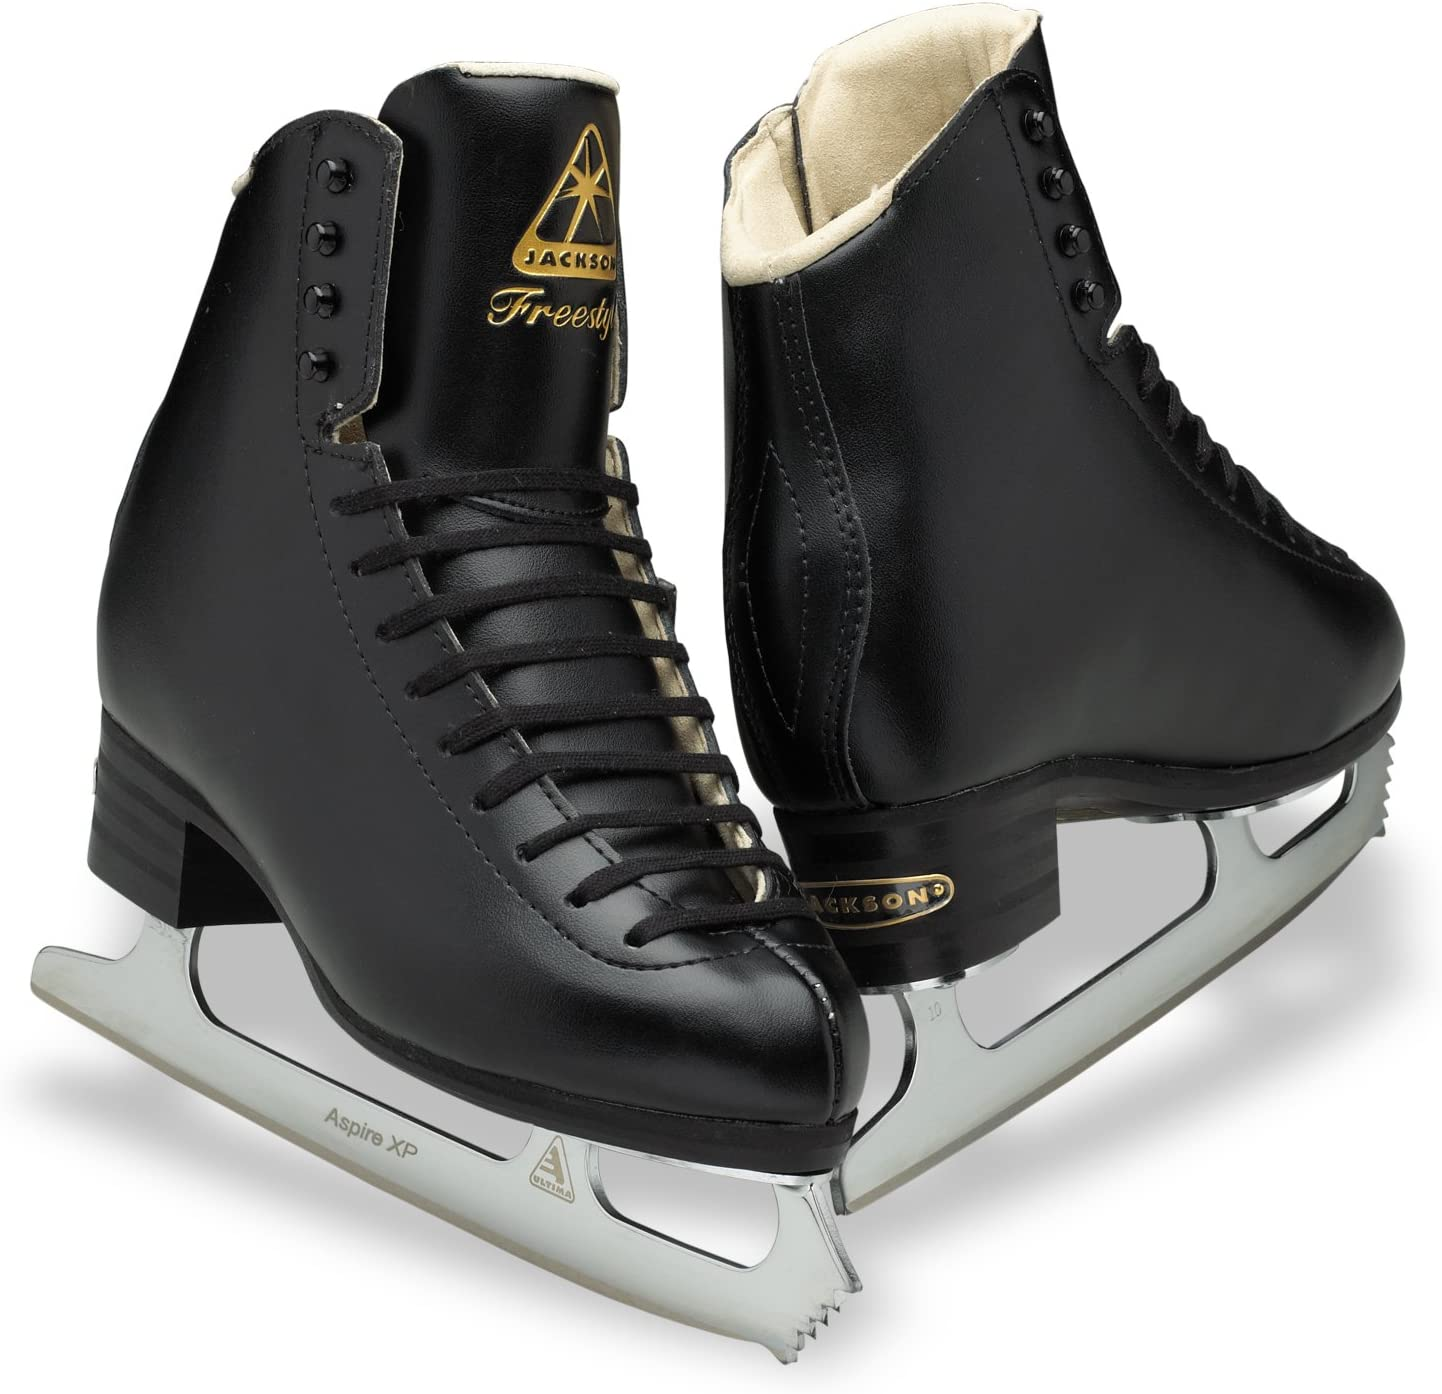 Jackson Ultima DJ2190 DJ2191 DJ2192 DJ2193 Freestyle Series / Aspire Blade / Figure Ice Skates for Women, Girls, Men, Boys